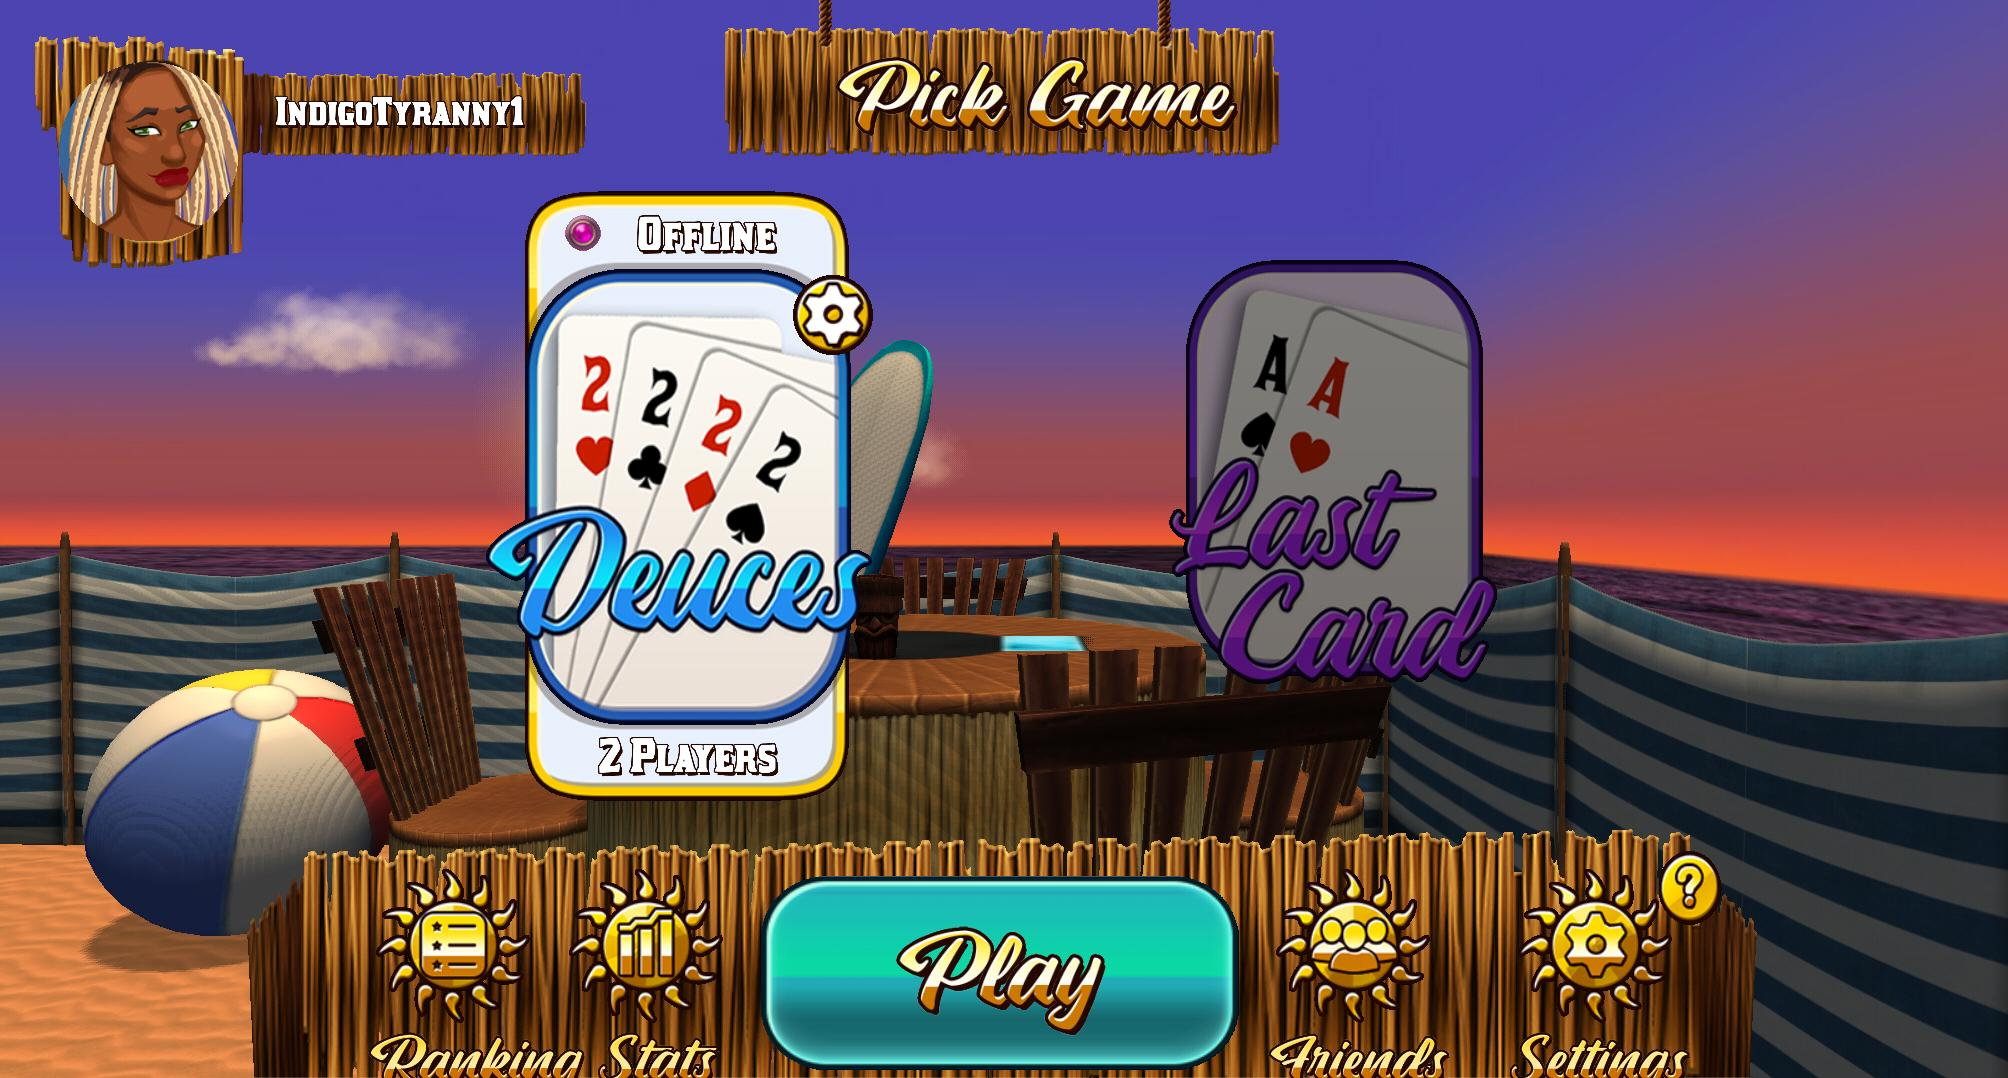 Card Room Deuces & Last Card, Playing Cards 1.2.3 Screenshot 2